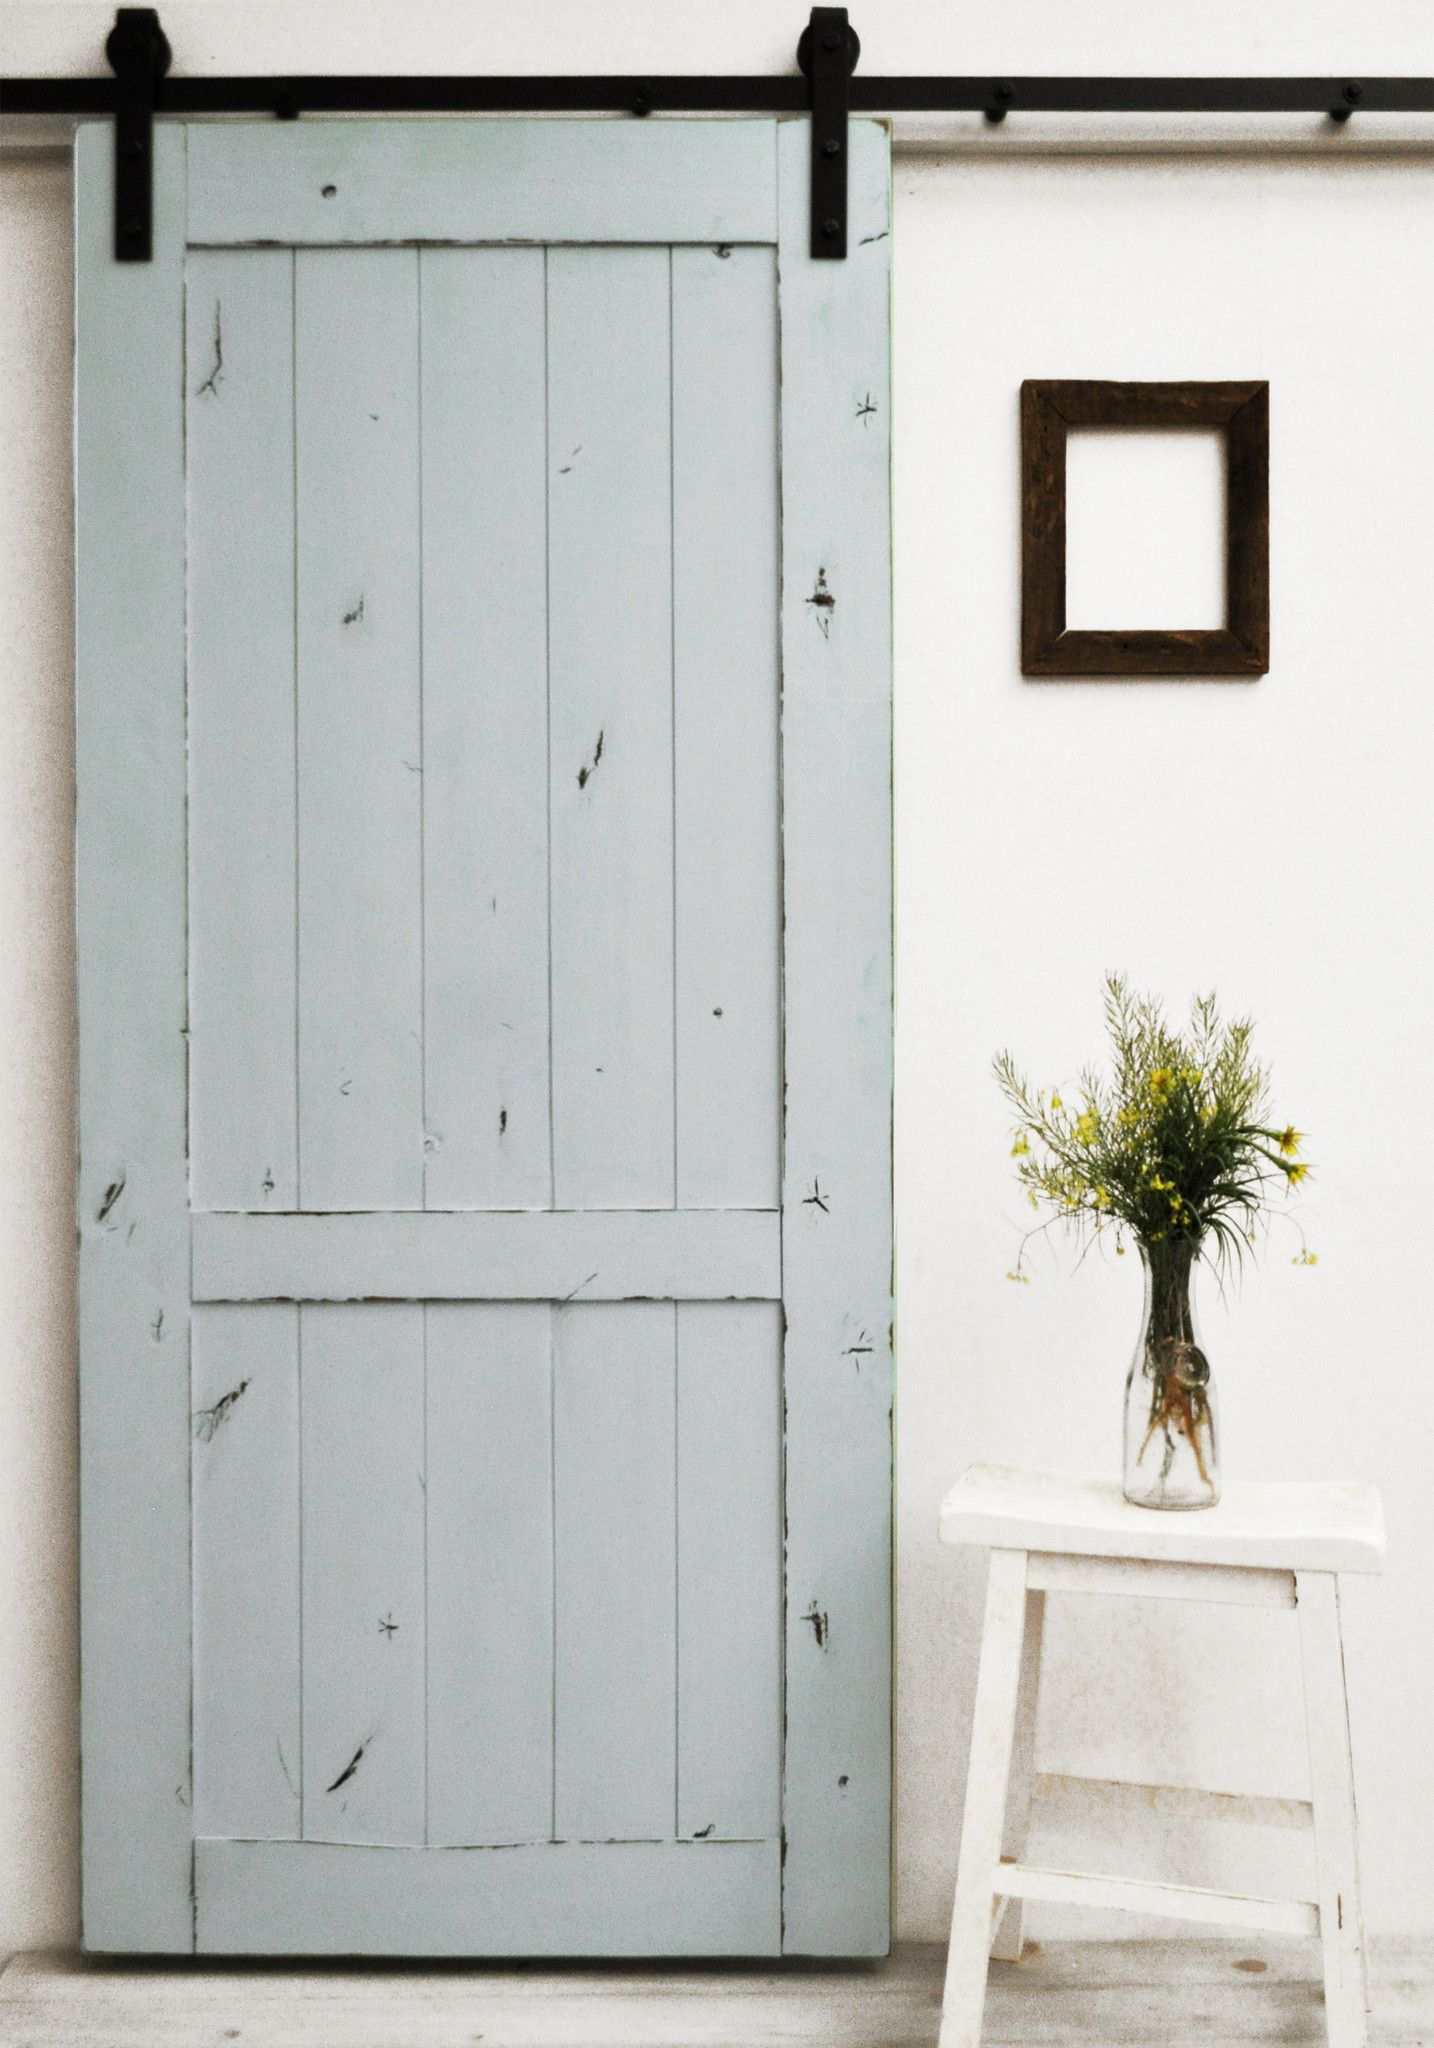 A lightly distressed finish on a classic barn door design Like Mama always said